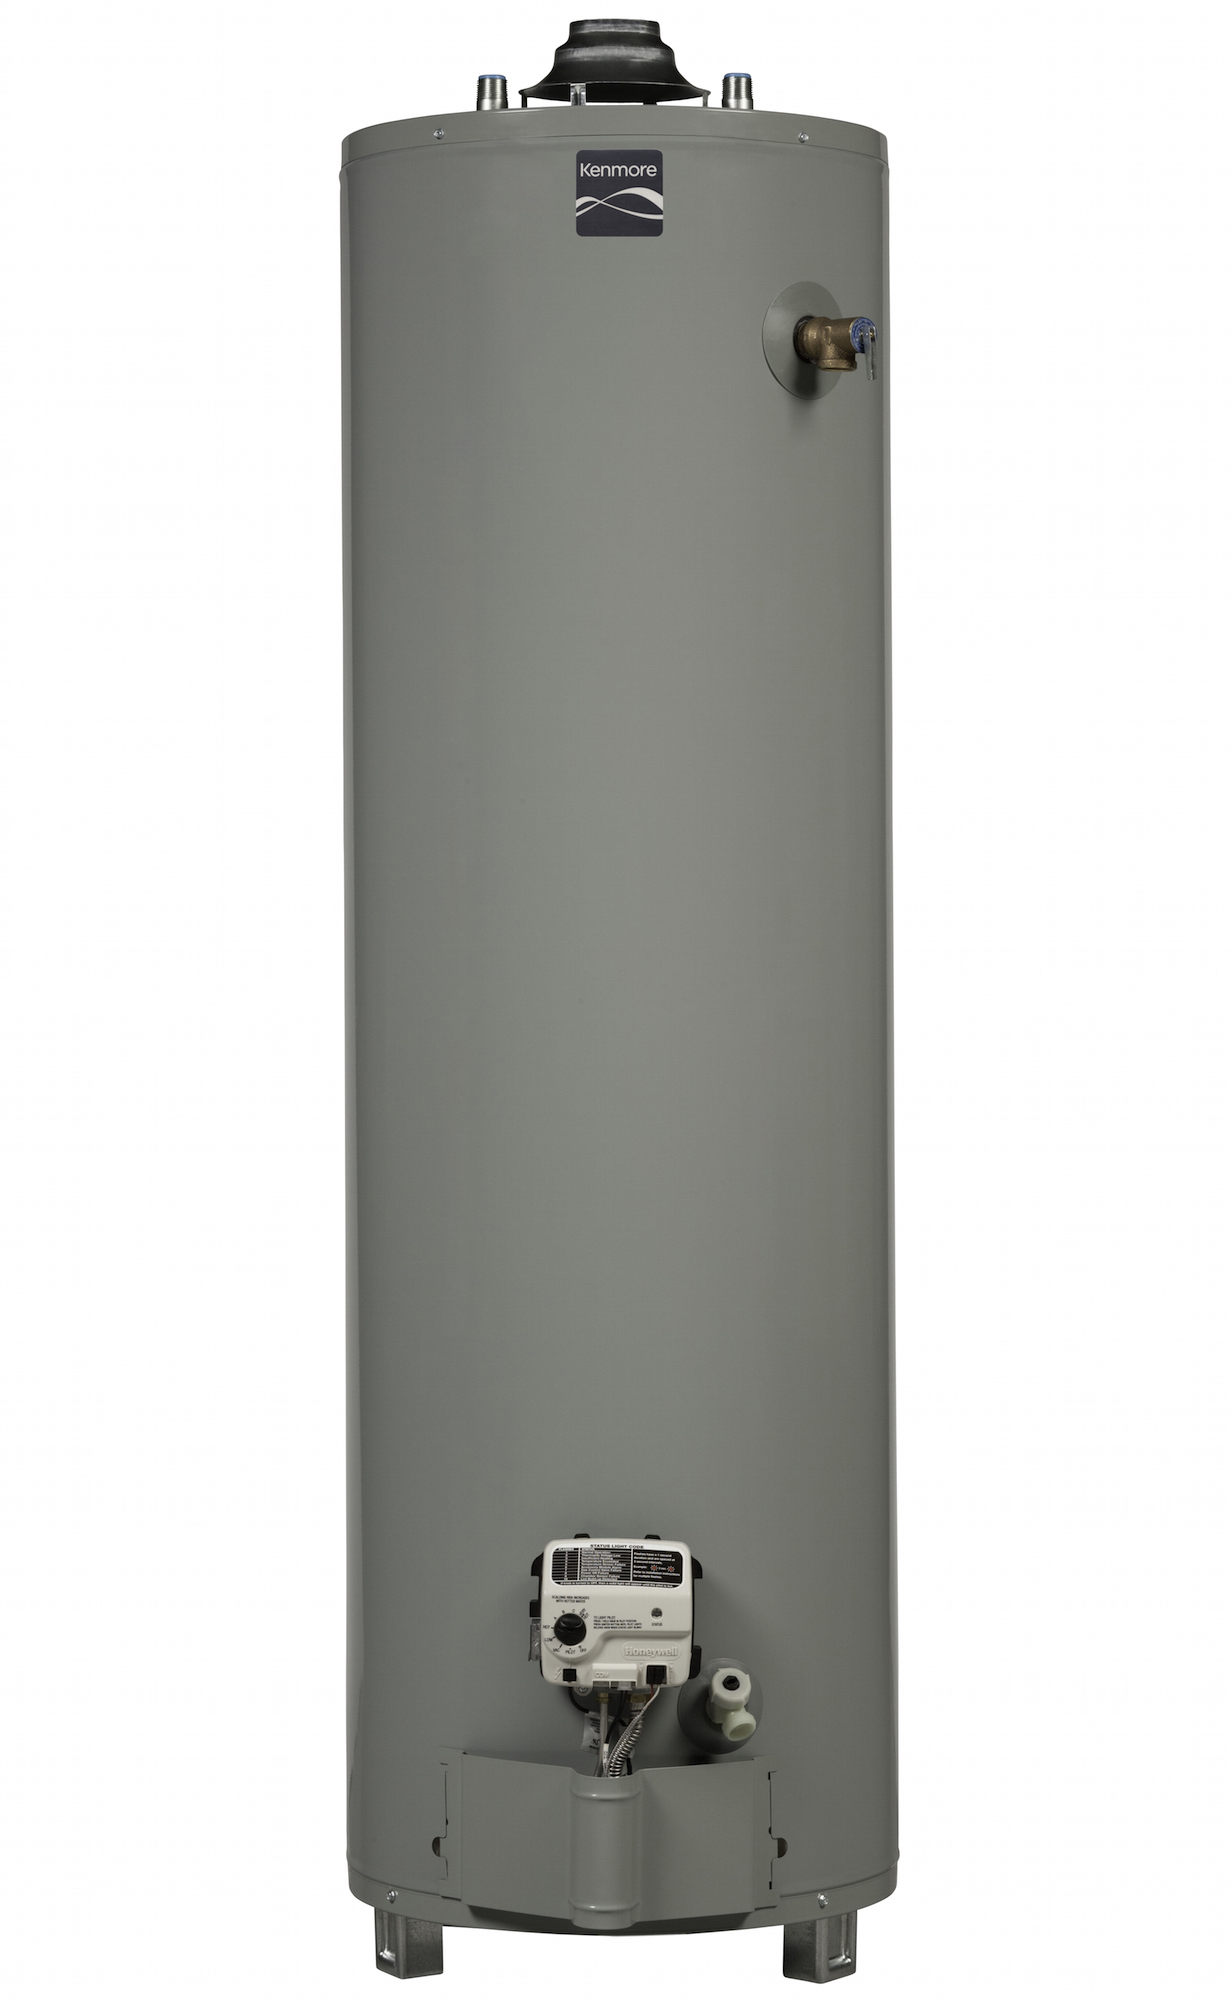 Kenmore 55630 30 gal. 6-Year Tall Natural Gas Ultra Low NOx Water Heater (Select California Markets) PartNumber: 04255630000P KsnValue: 04255630000 MfgPartNumber: 55630